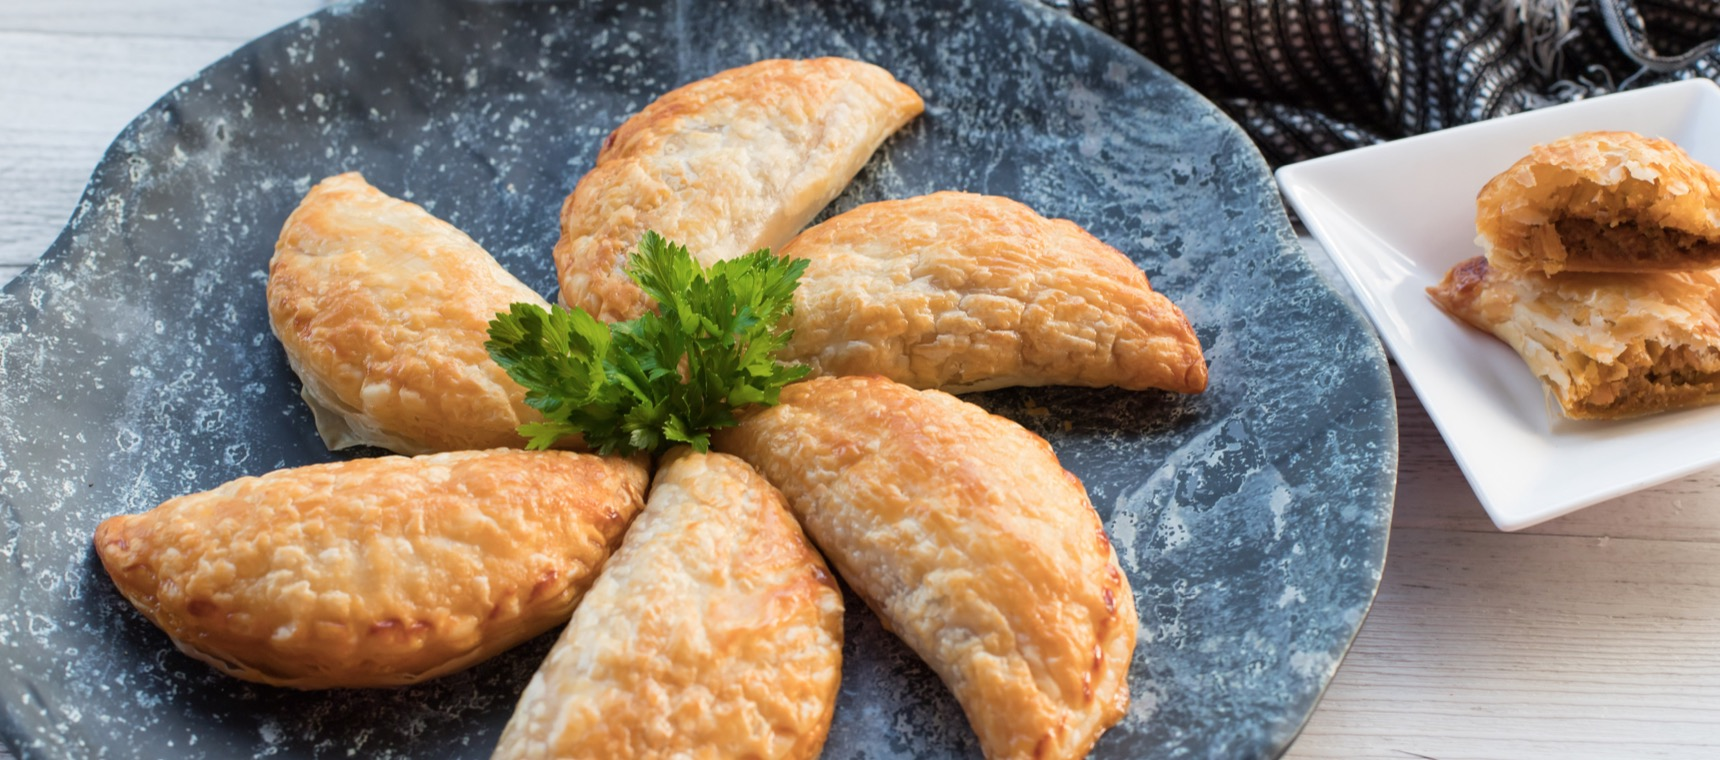 Curried Beef and Vegetable Hand Pies